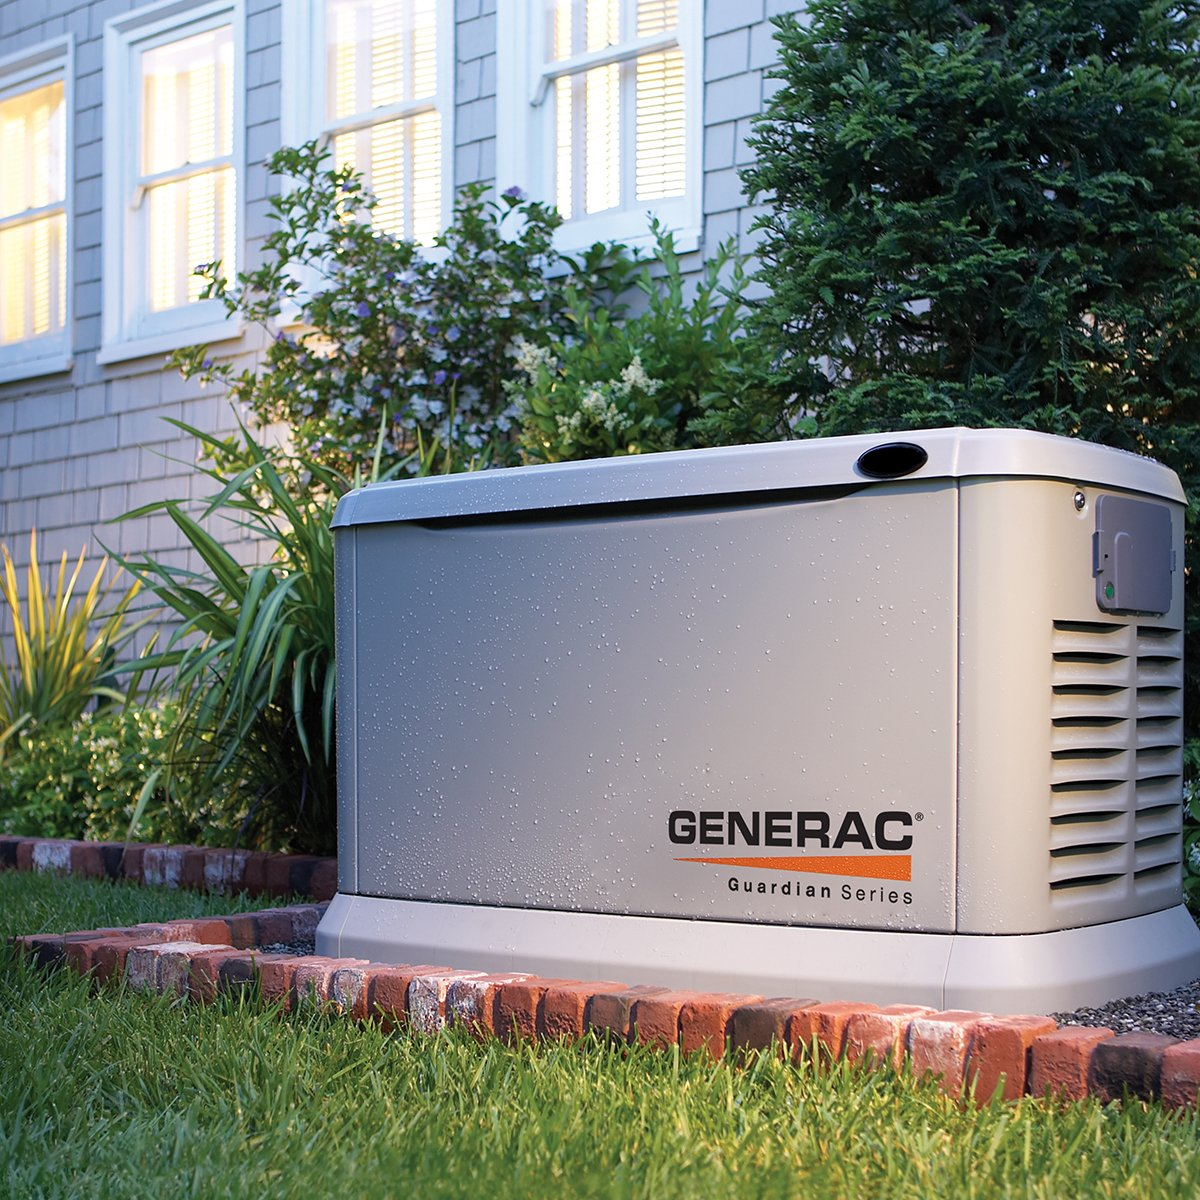 generac. Amazon.com : Generac 6461 Guardian Series, 16kW Air Cooled Standby Generator, Natural Gas/Liquid Propane Powered, Steel Enclosed, With 16 Circuit 100-Amp R